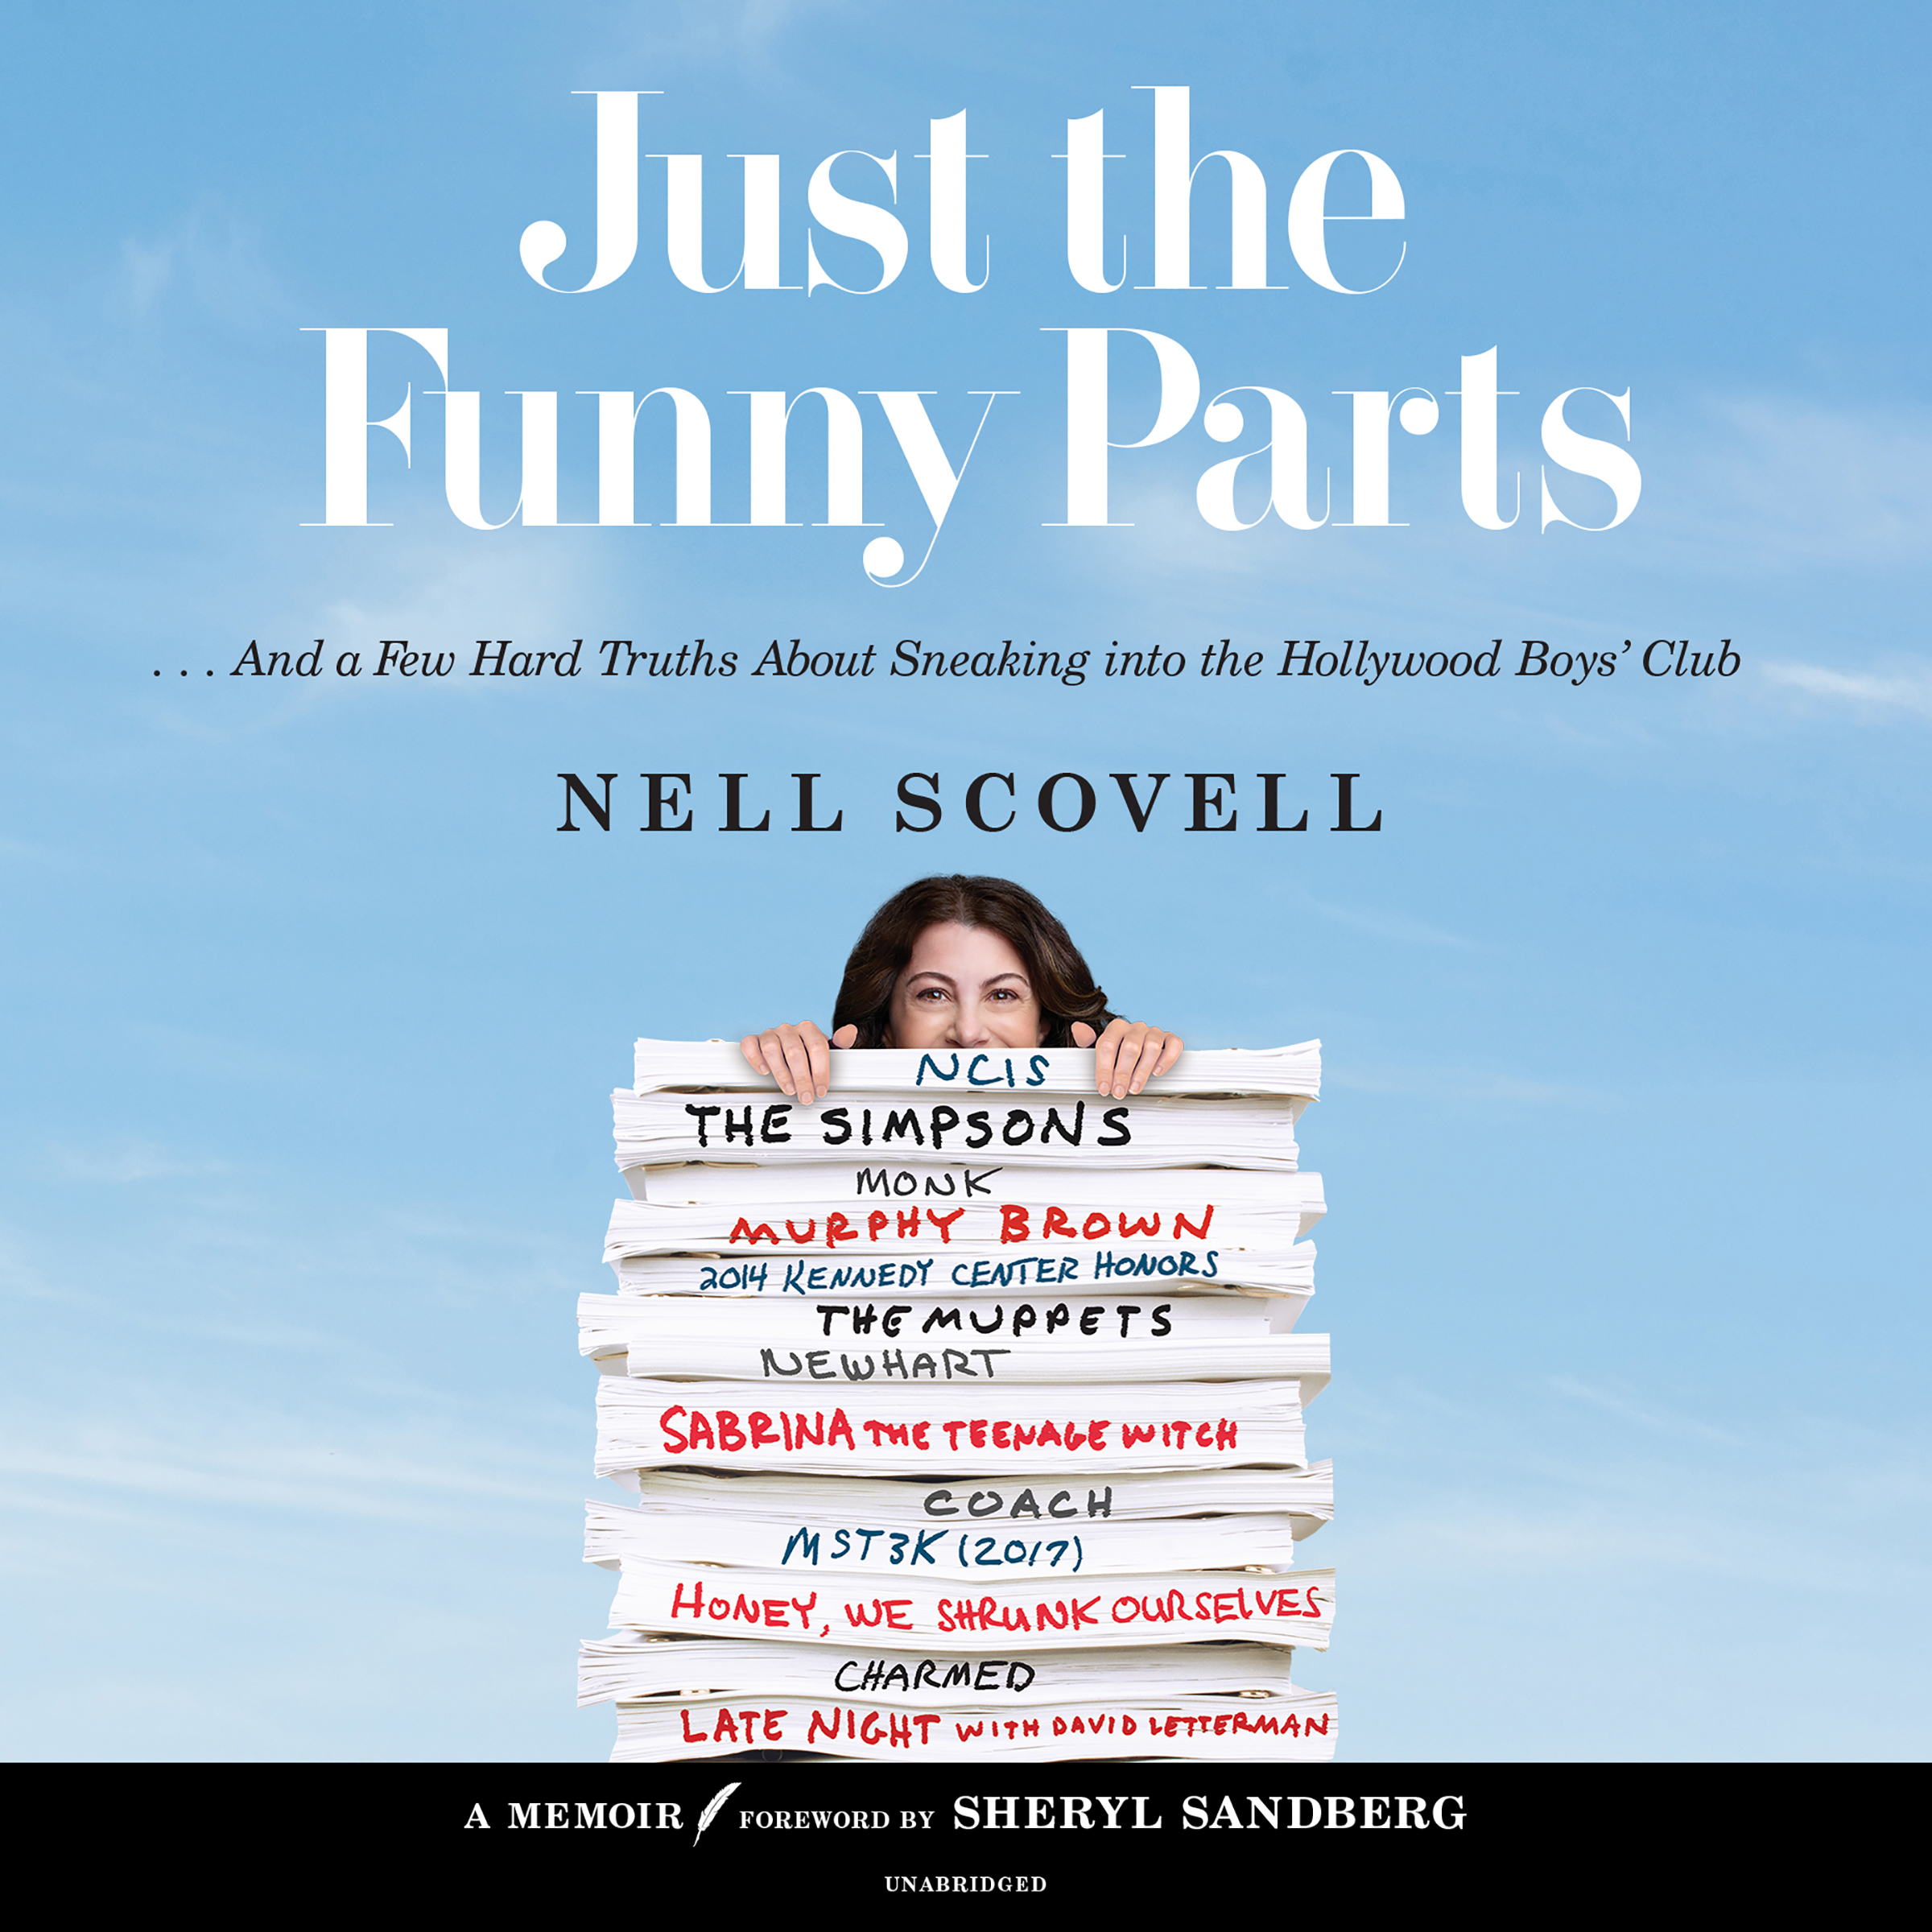 """On the cover of """"Just the Funny Parts,"""" author Nell Scovell peeks over a stack of scripts on which she has worked: NCIS, The Simpsons, Monk, Murphy Brown, 2014 Kennedy Center Honors, The Muppets, Newhart, Sabrina the Teenage Witch, Coach, and MST3K (2017)"""